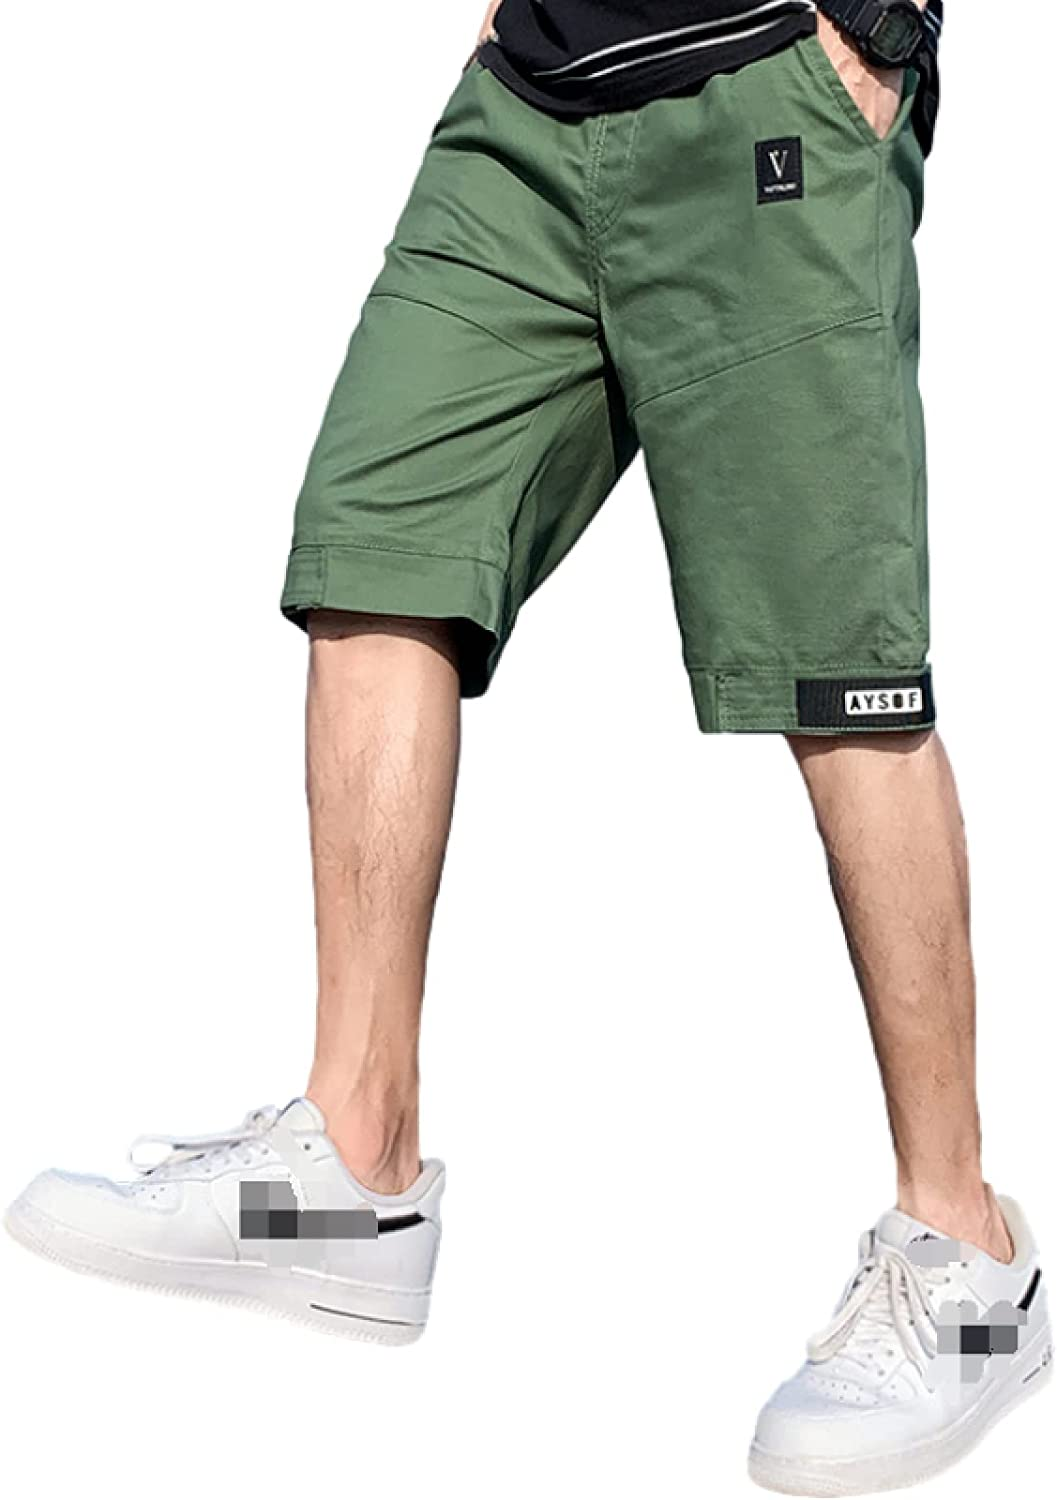 Men's Casual Straight Shorts Fashion Loose Comfortable All-Match Stitching Plus